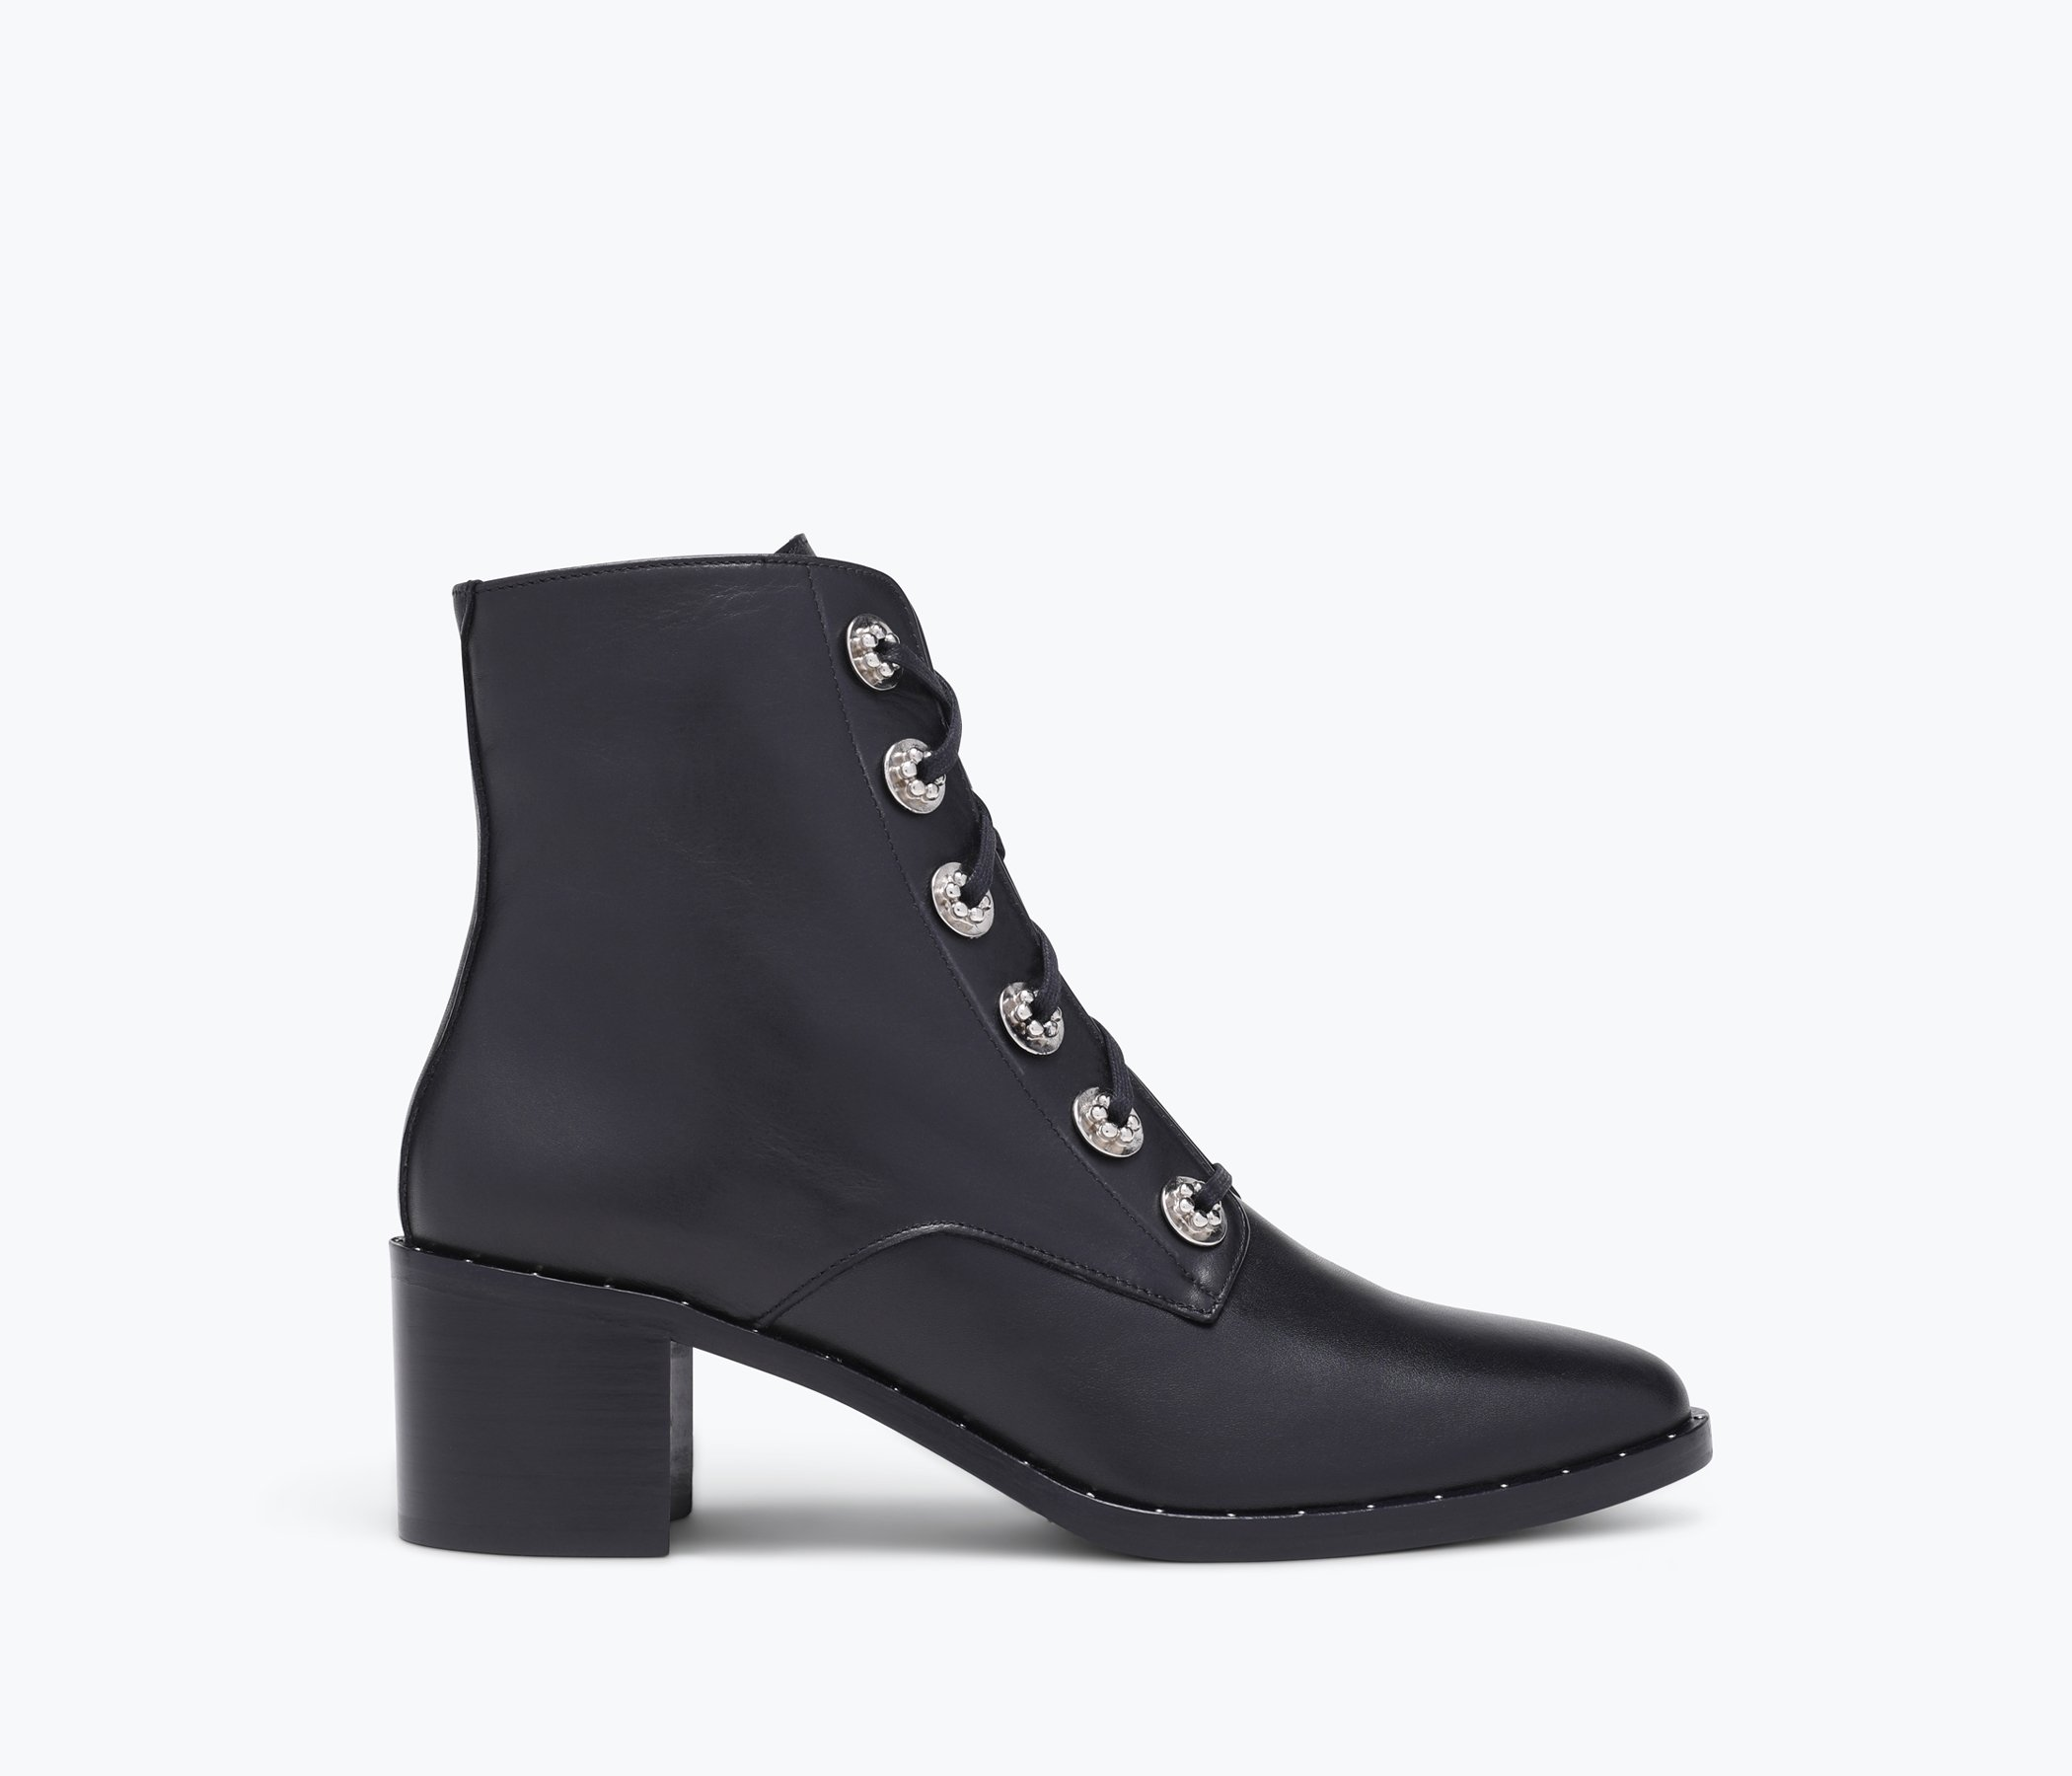 ACE LACE UP BOOT by Freda Salvadore, available on fredasalvador.com for $545 Karlie Kloss Shoes Exact Product